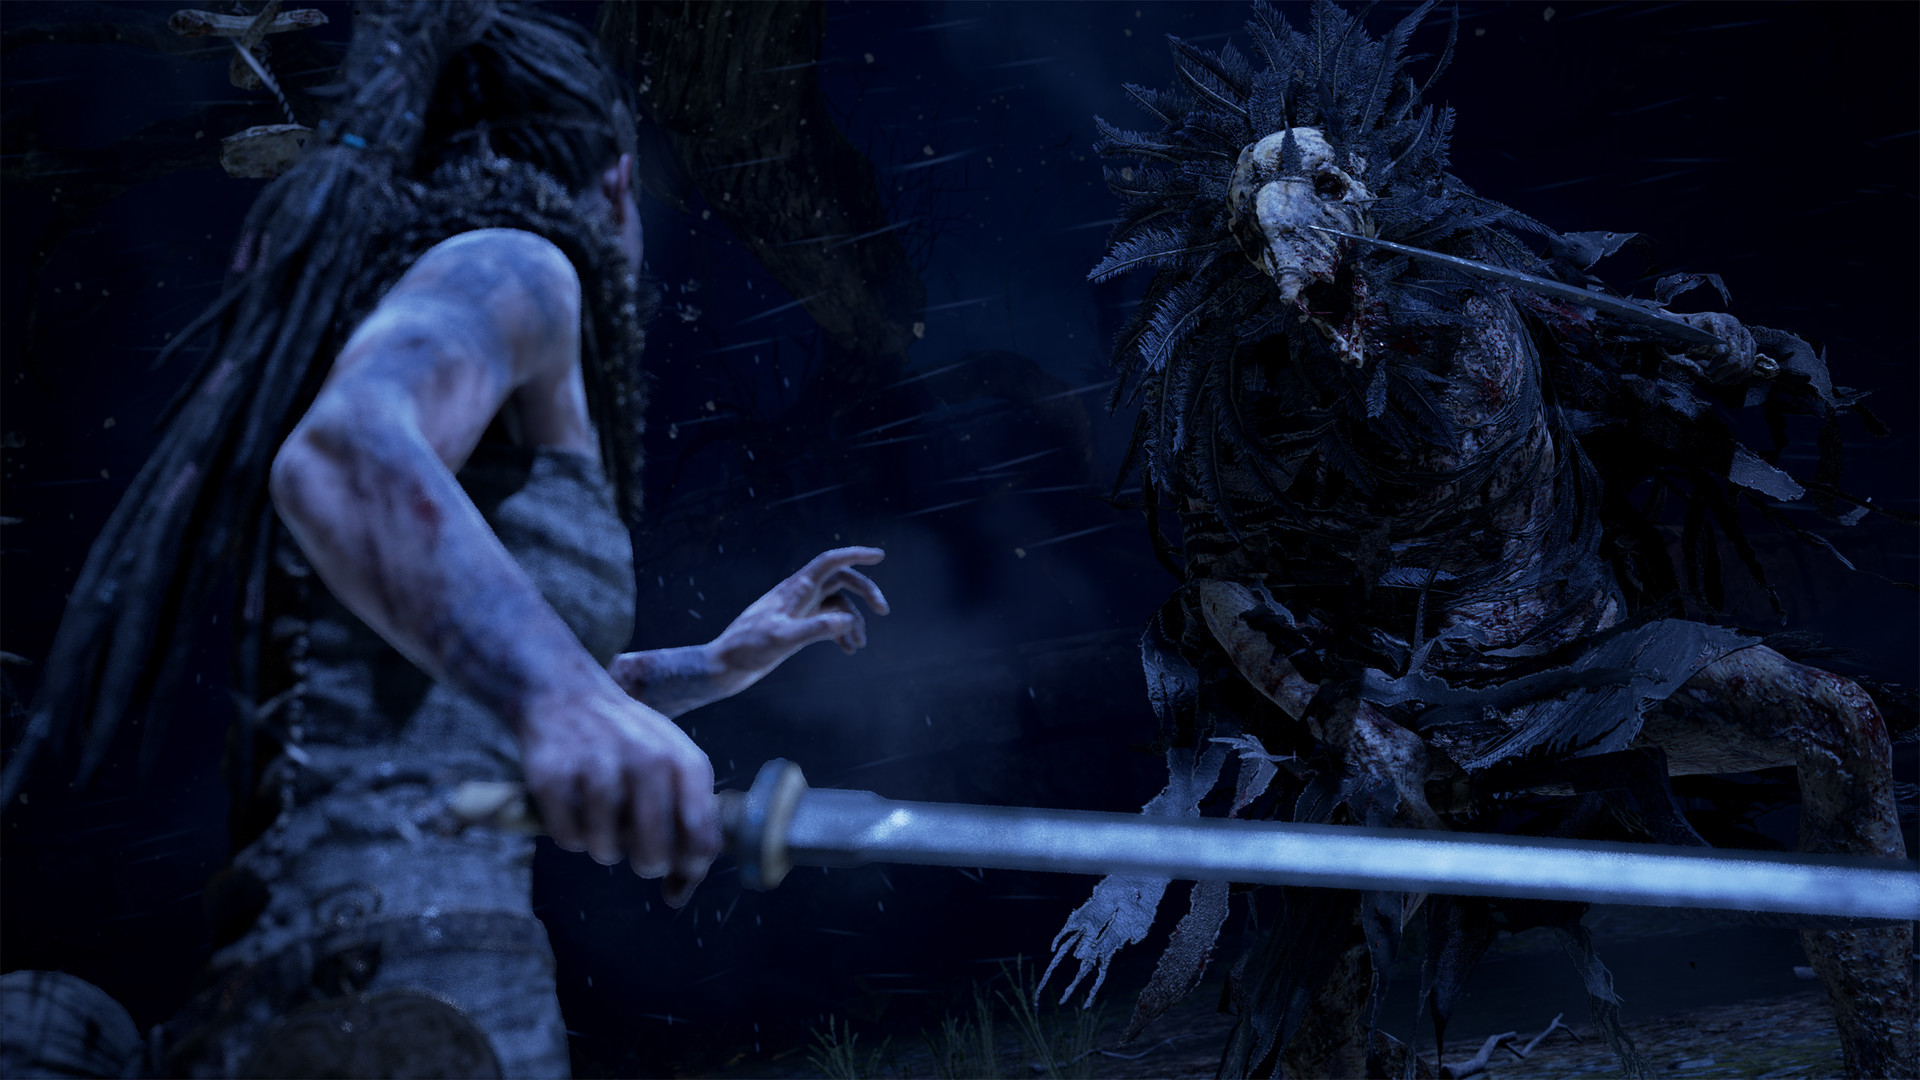 Hellblade: Senua's Sacrifice on Steam